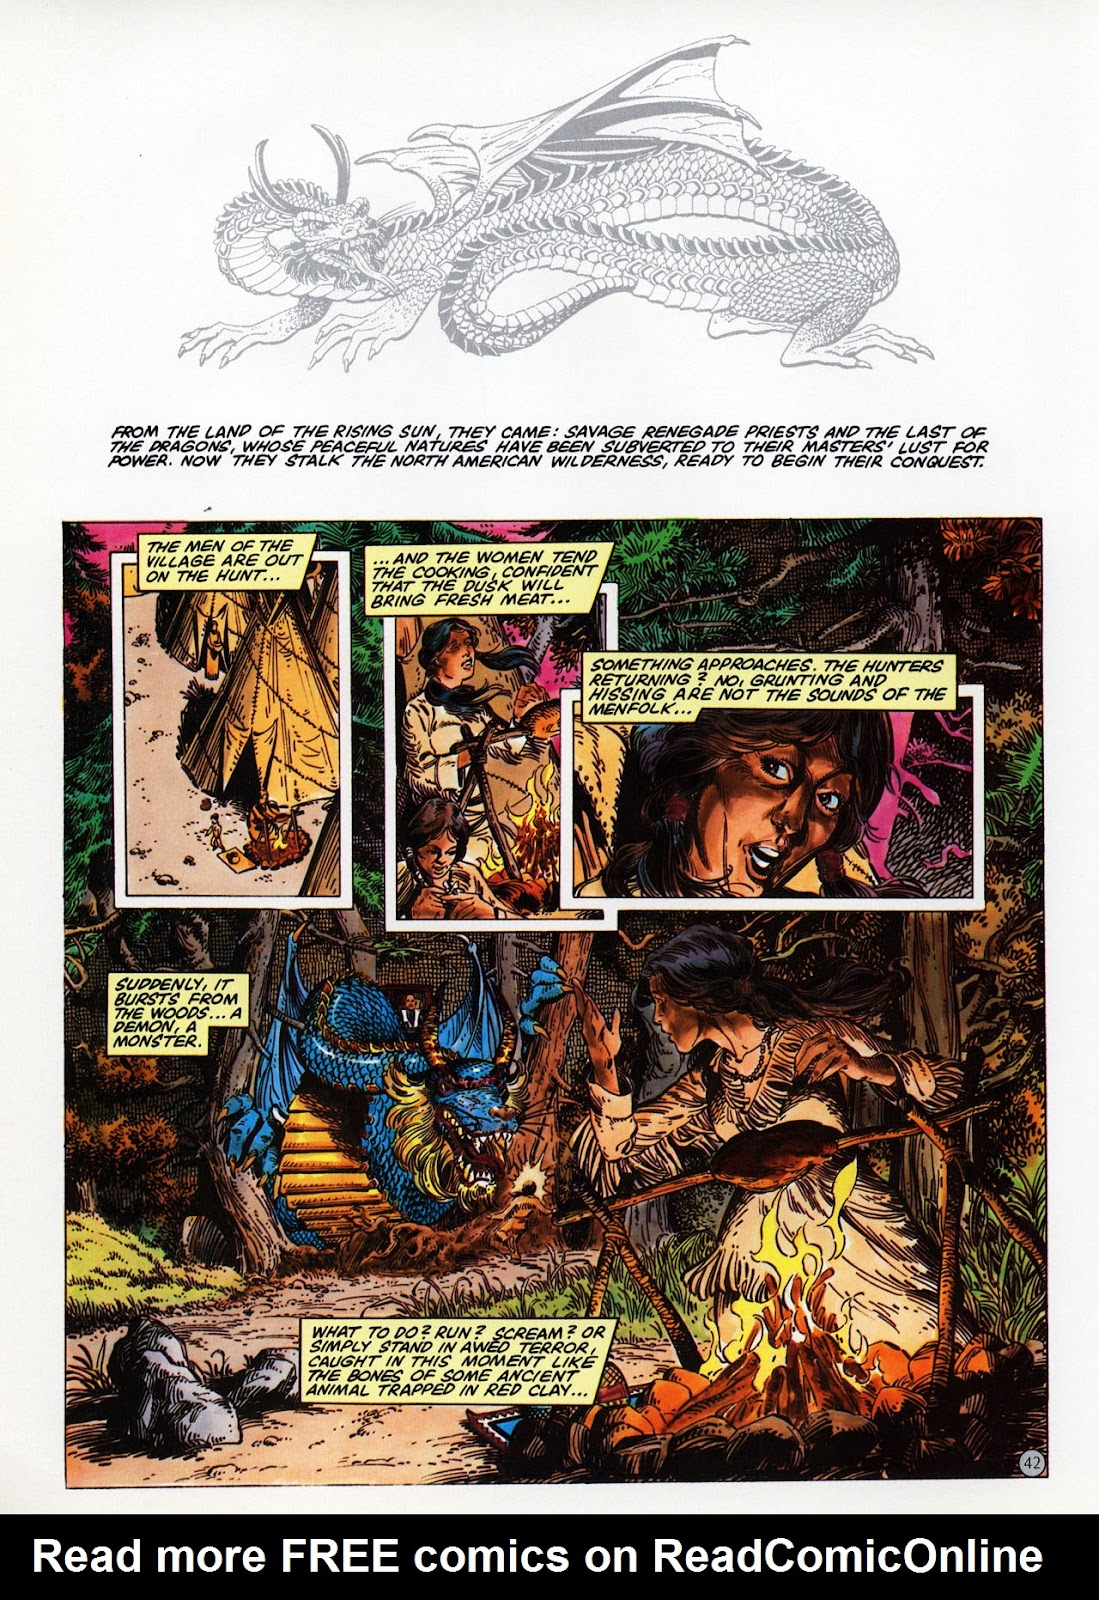 Read online Epic Graphic Novel: Last of the Dragons comic -  Issue # Full - 43